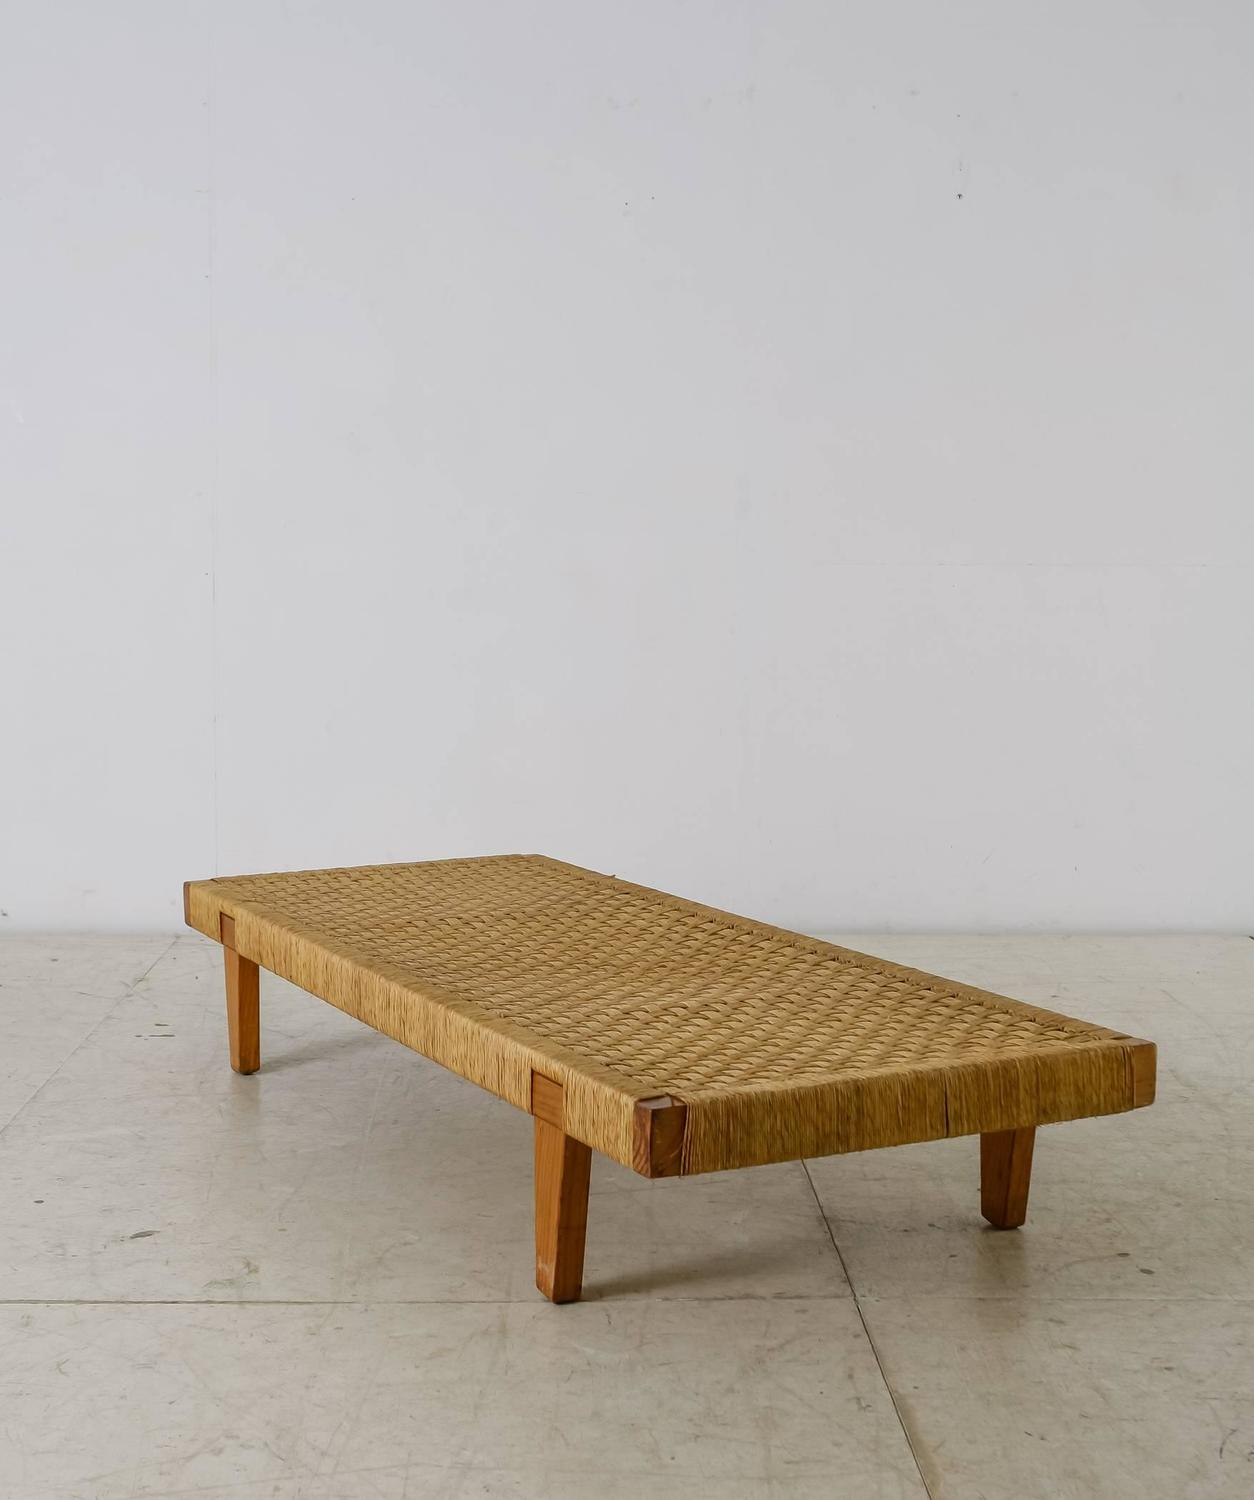 Mexican wood and cane bench or daybed 1950s for sale at Daybed bench